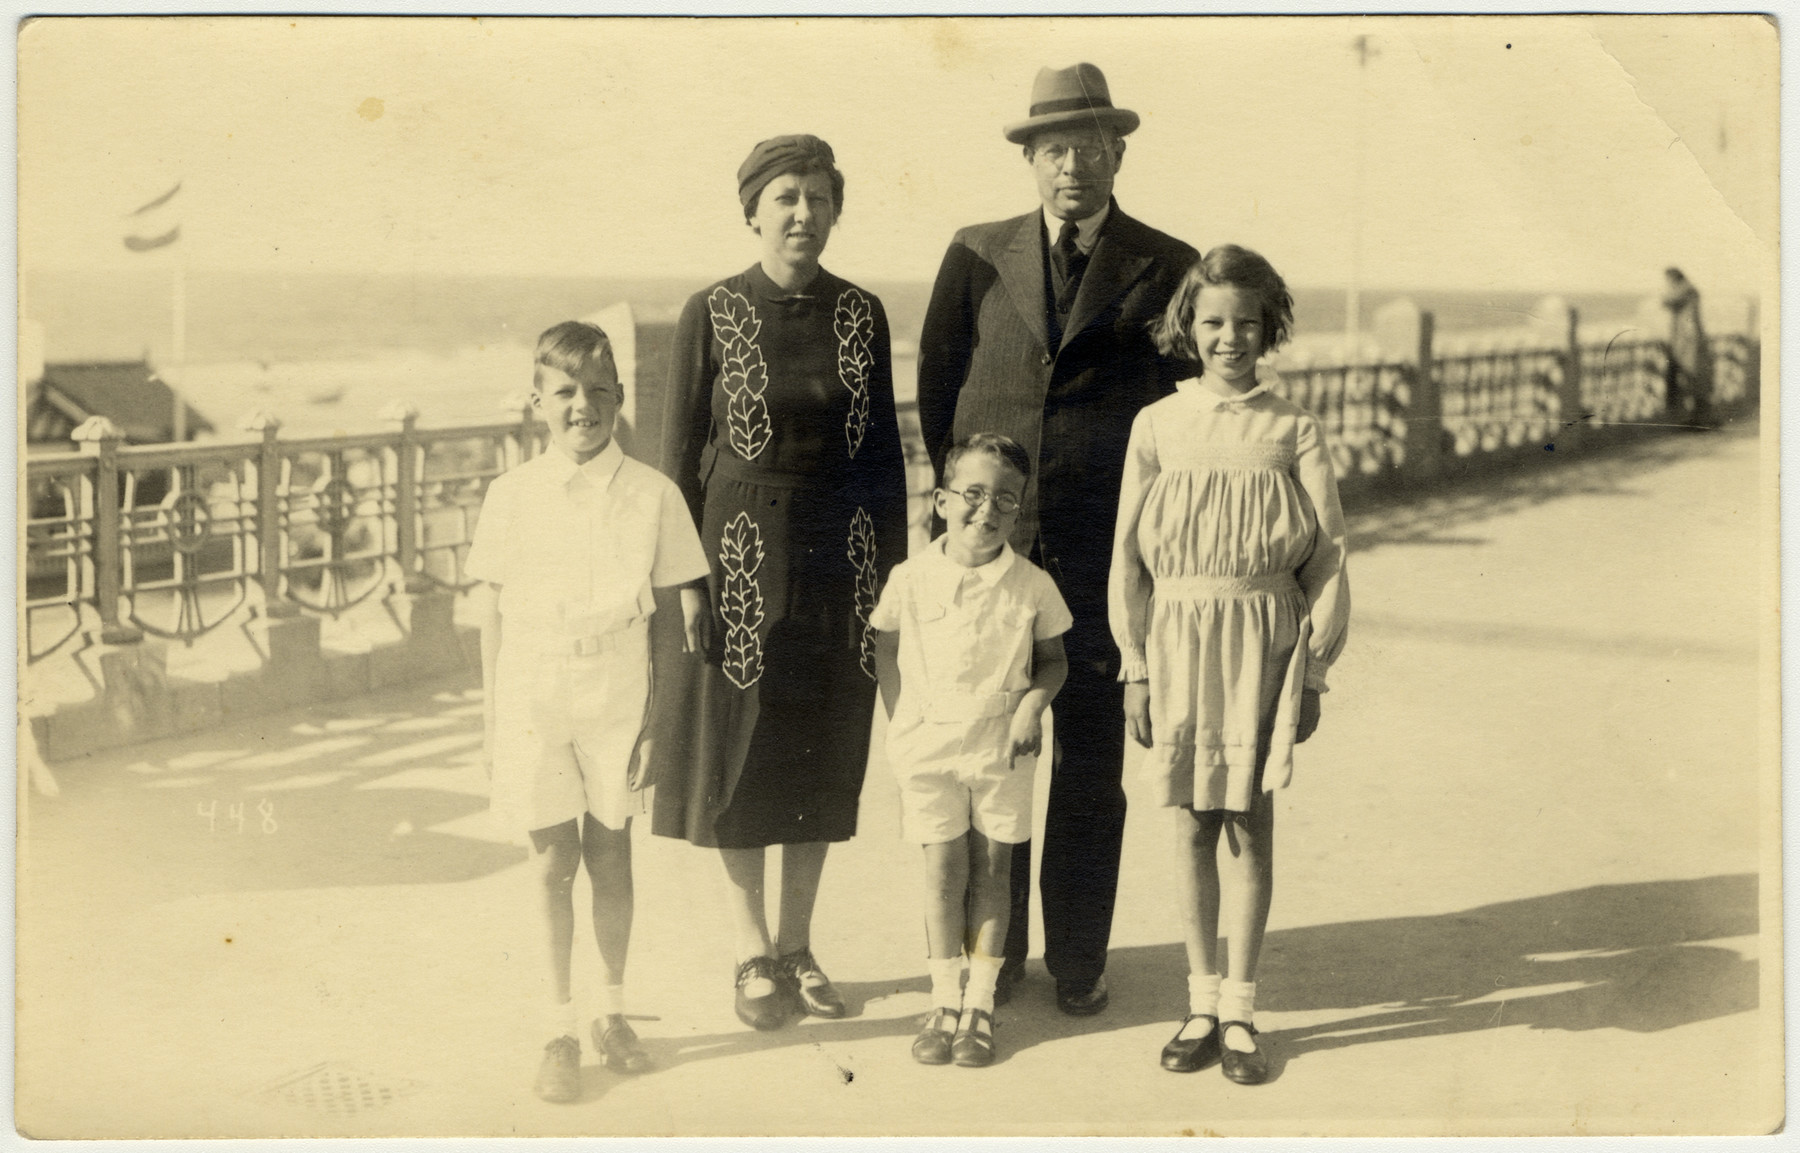 The Joshua family walks by the beach in Scheveningen where they had fled from Germany.  From left to right are Jacob, Elisabeth, Henry, Max and Karin Joshua.